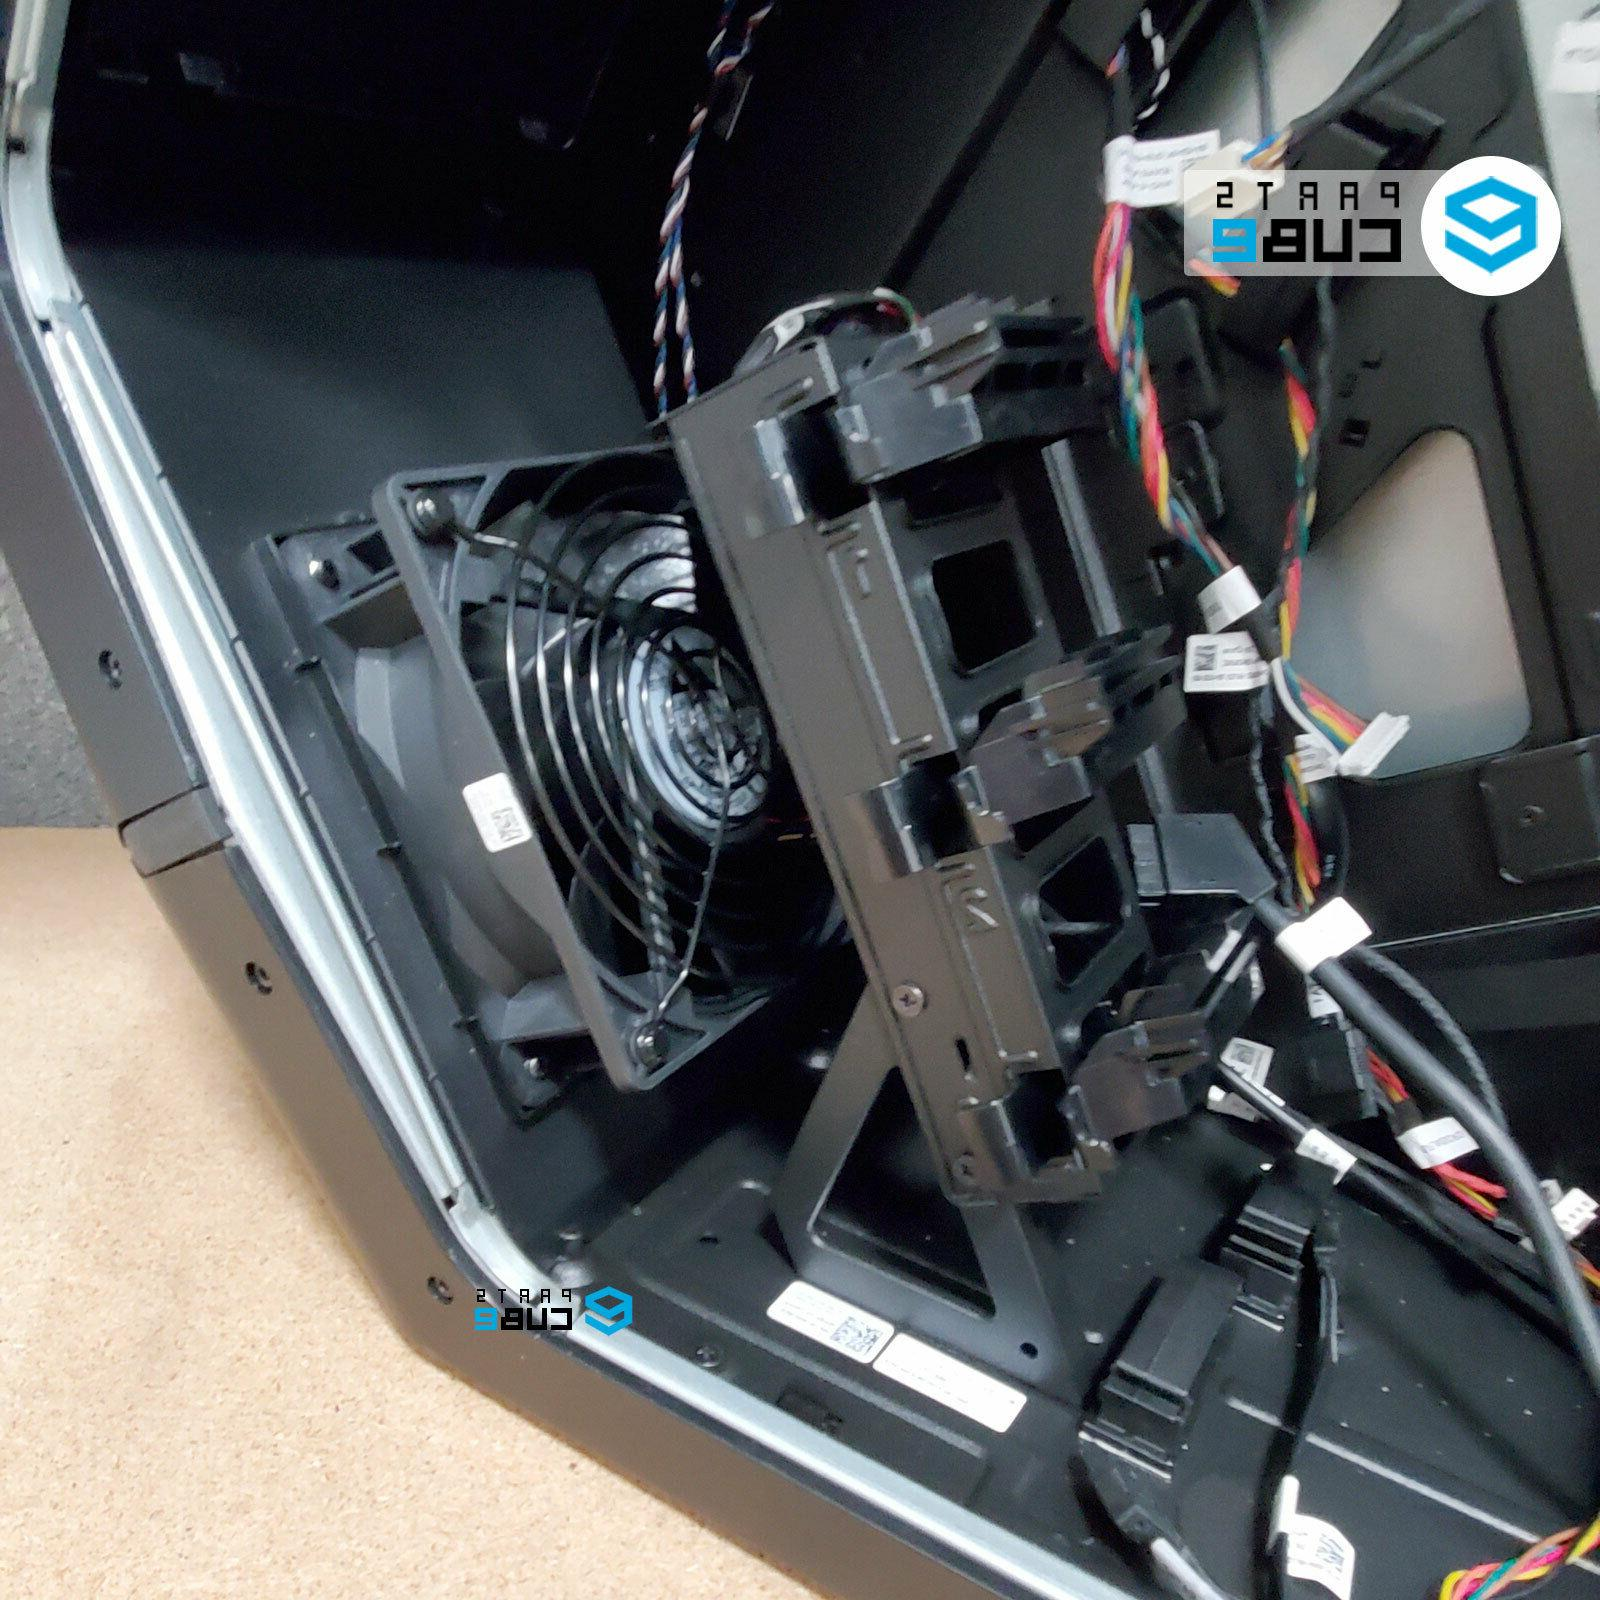 NEW Dell Alienware 51 Chassis Case for build own gaming